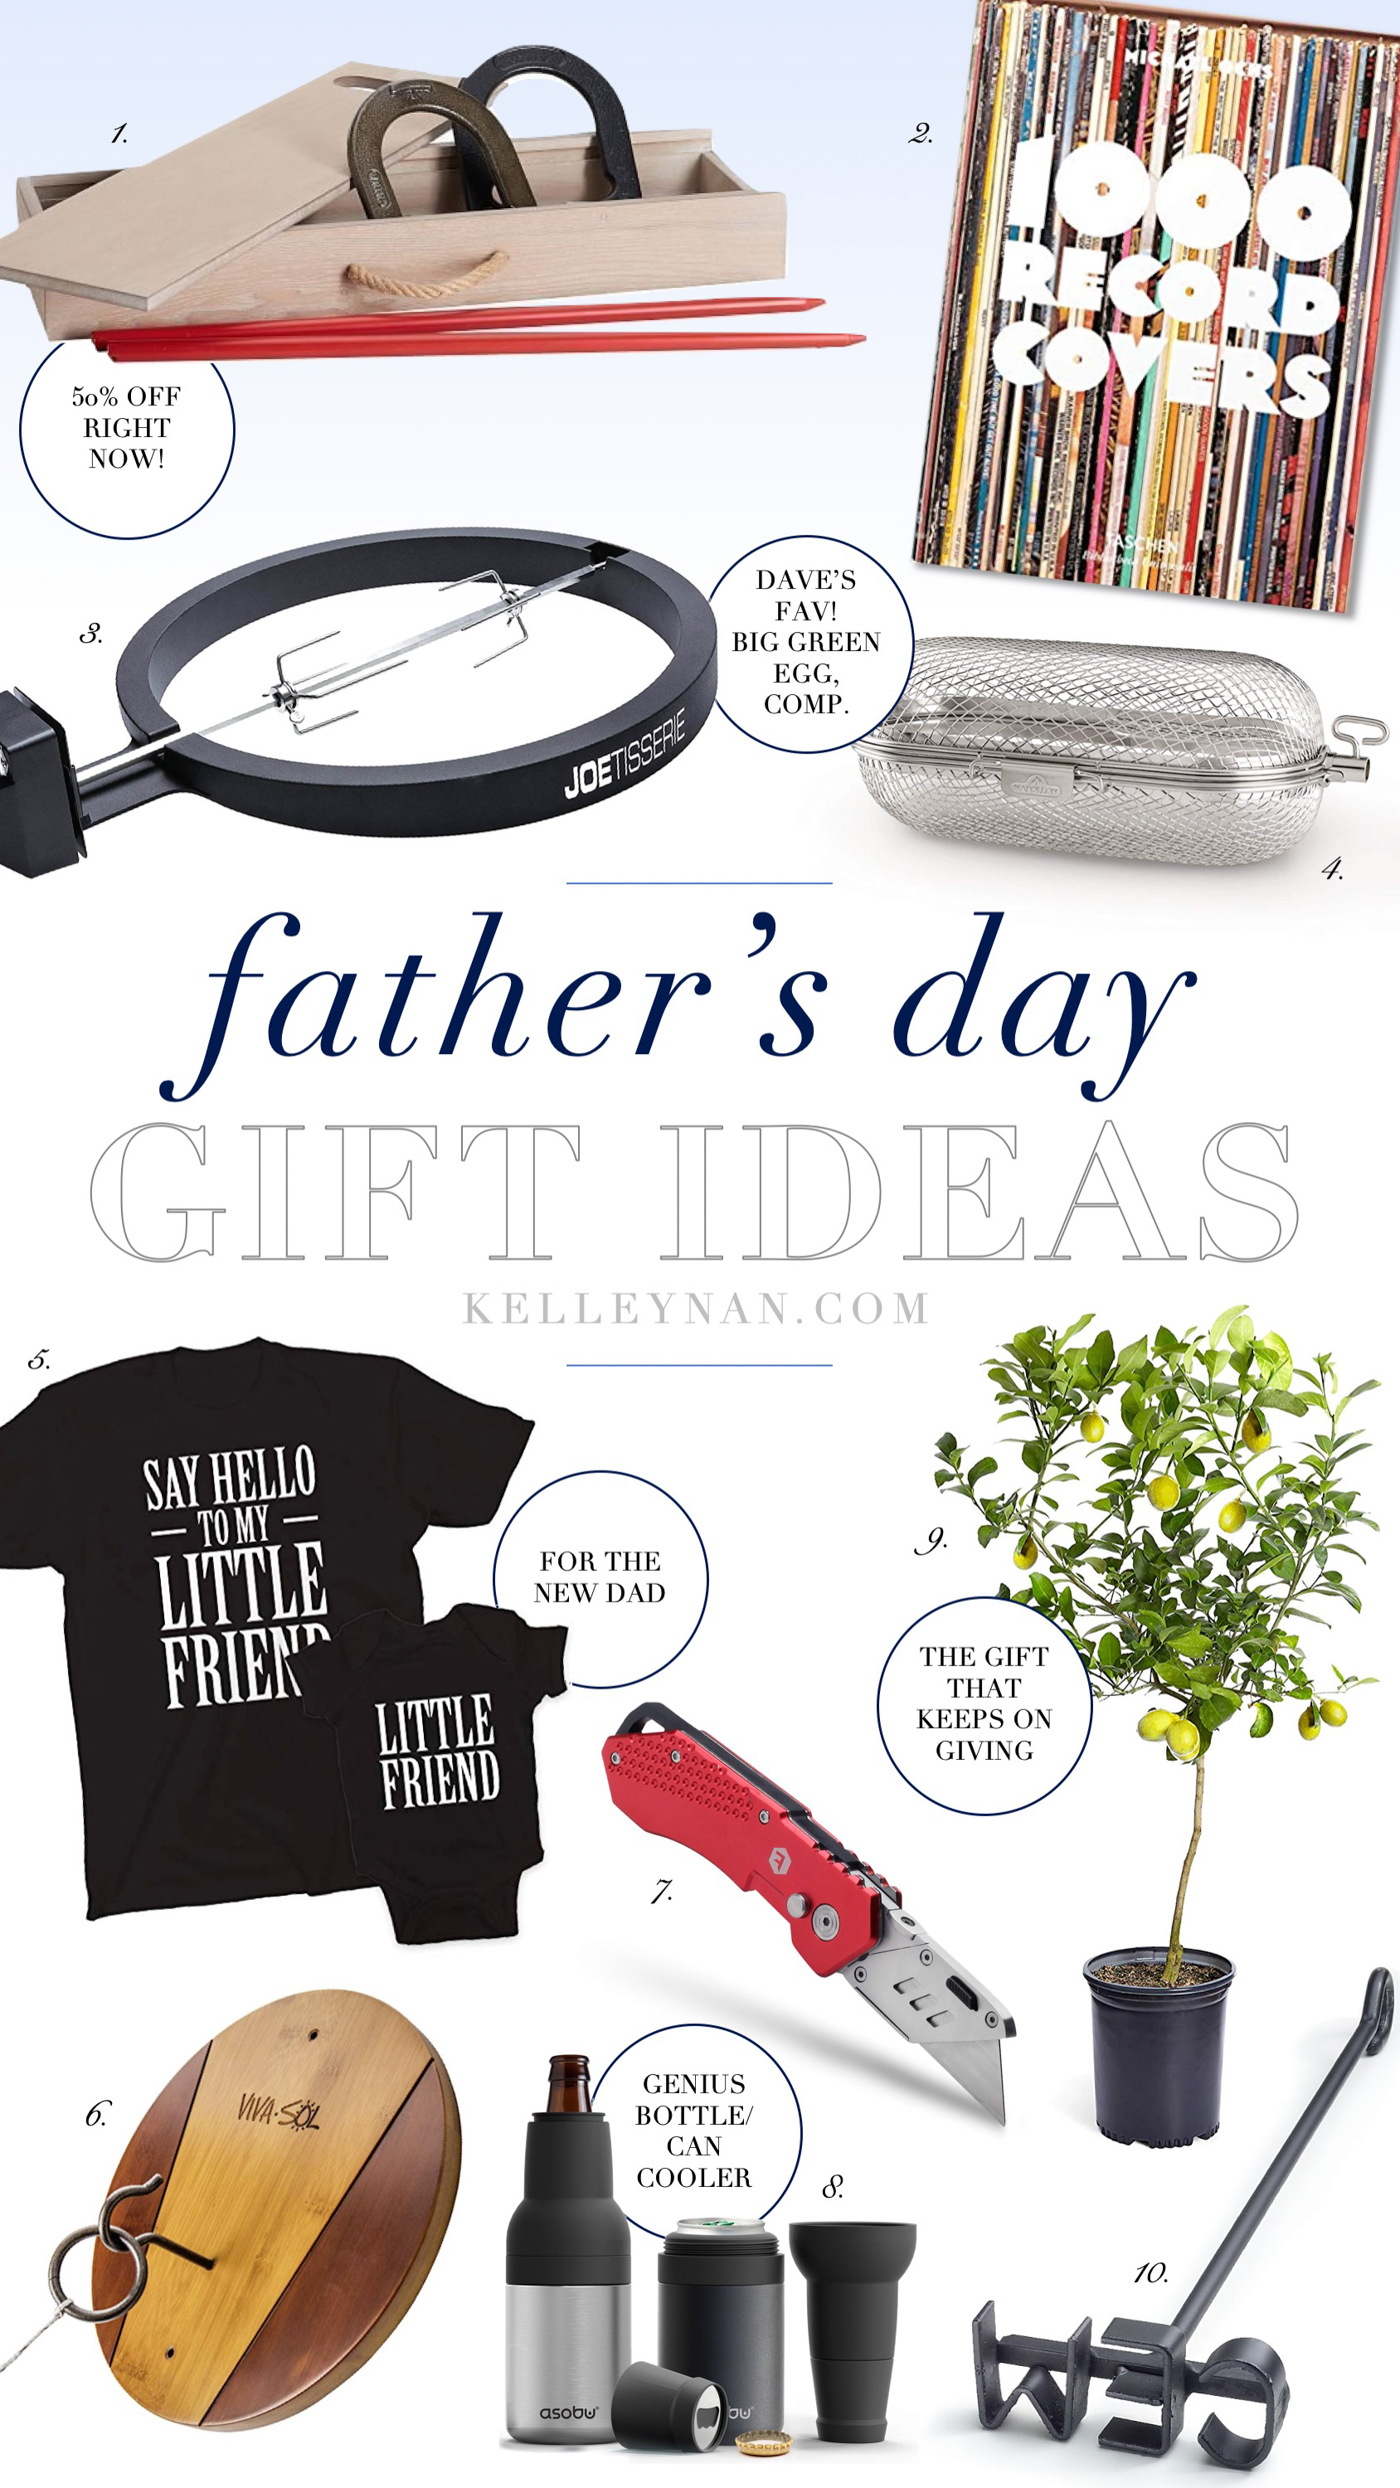 Father's Day Gift Ideas for Different Price Points and Aged=s